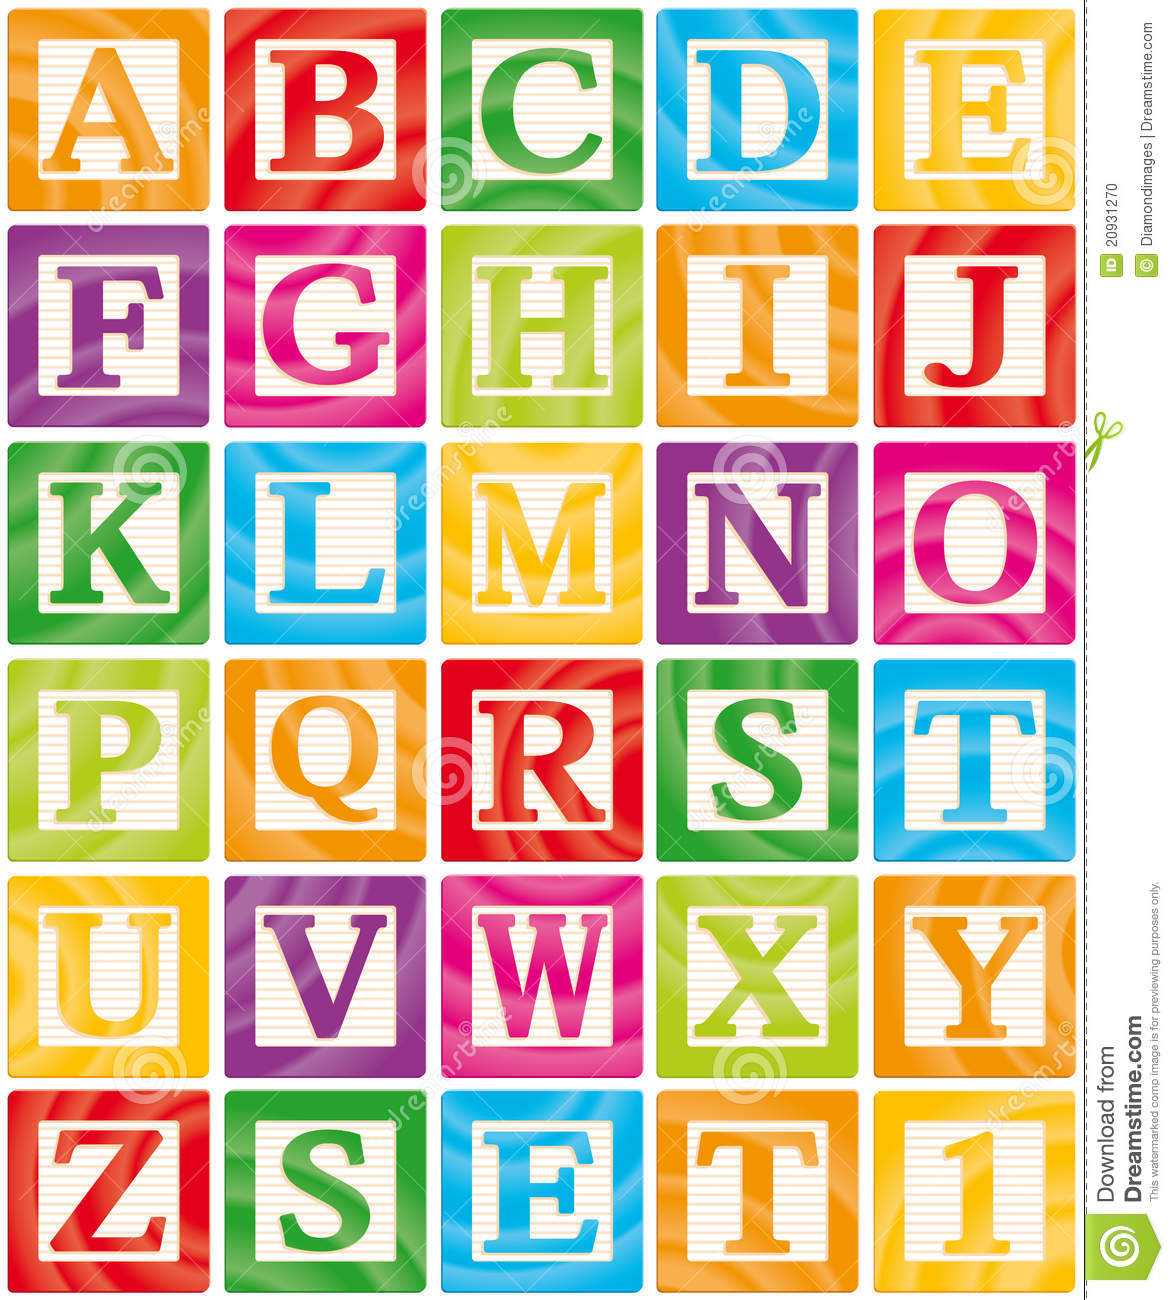 Alphabet block letter clipart png royalty free Baby Block Letters Clipart - Clipart Kid png royalty free